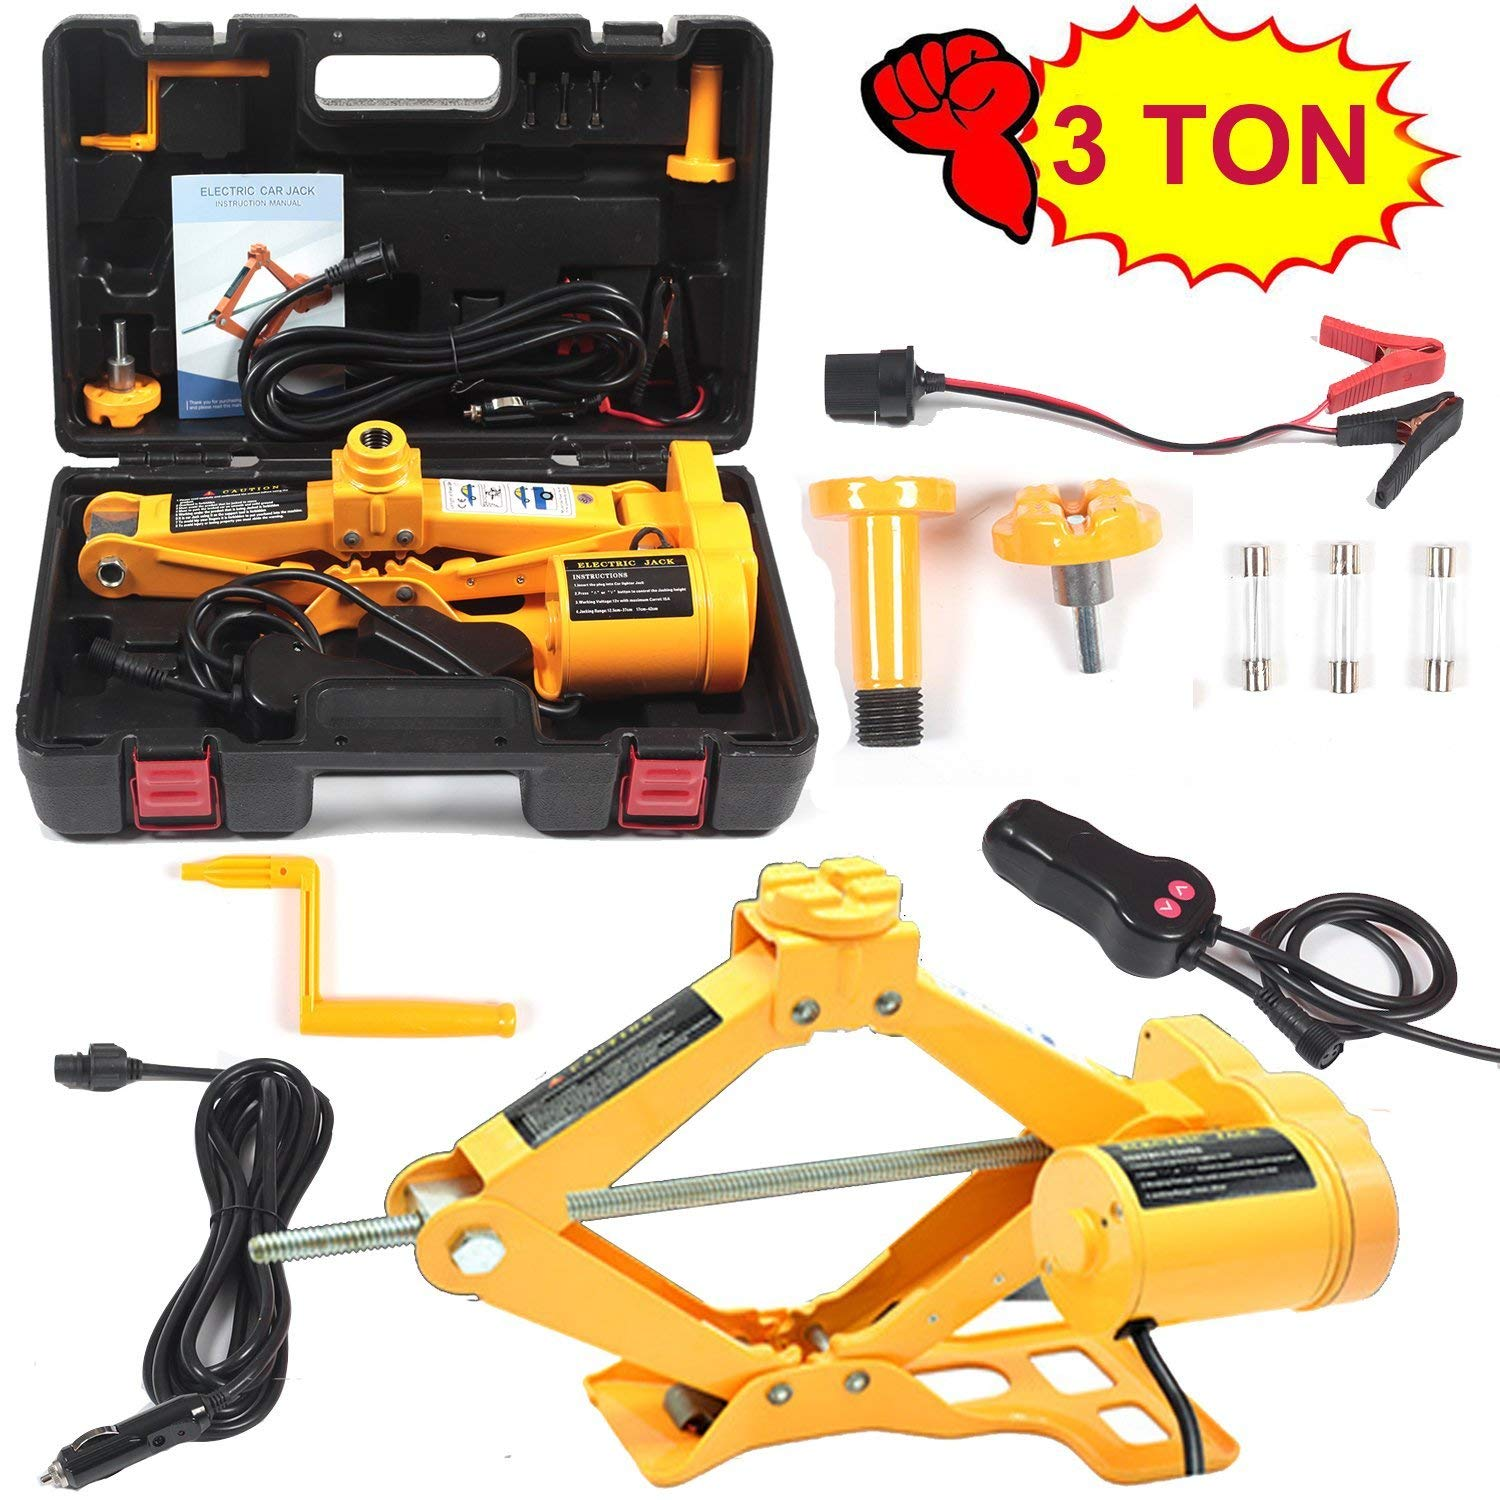 Floor Jack Flisol Home Hydraulic Parts Diagram Electric Car 3 Ton All In One Automatic 12v Scissor Lift Set For Sedans